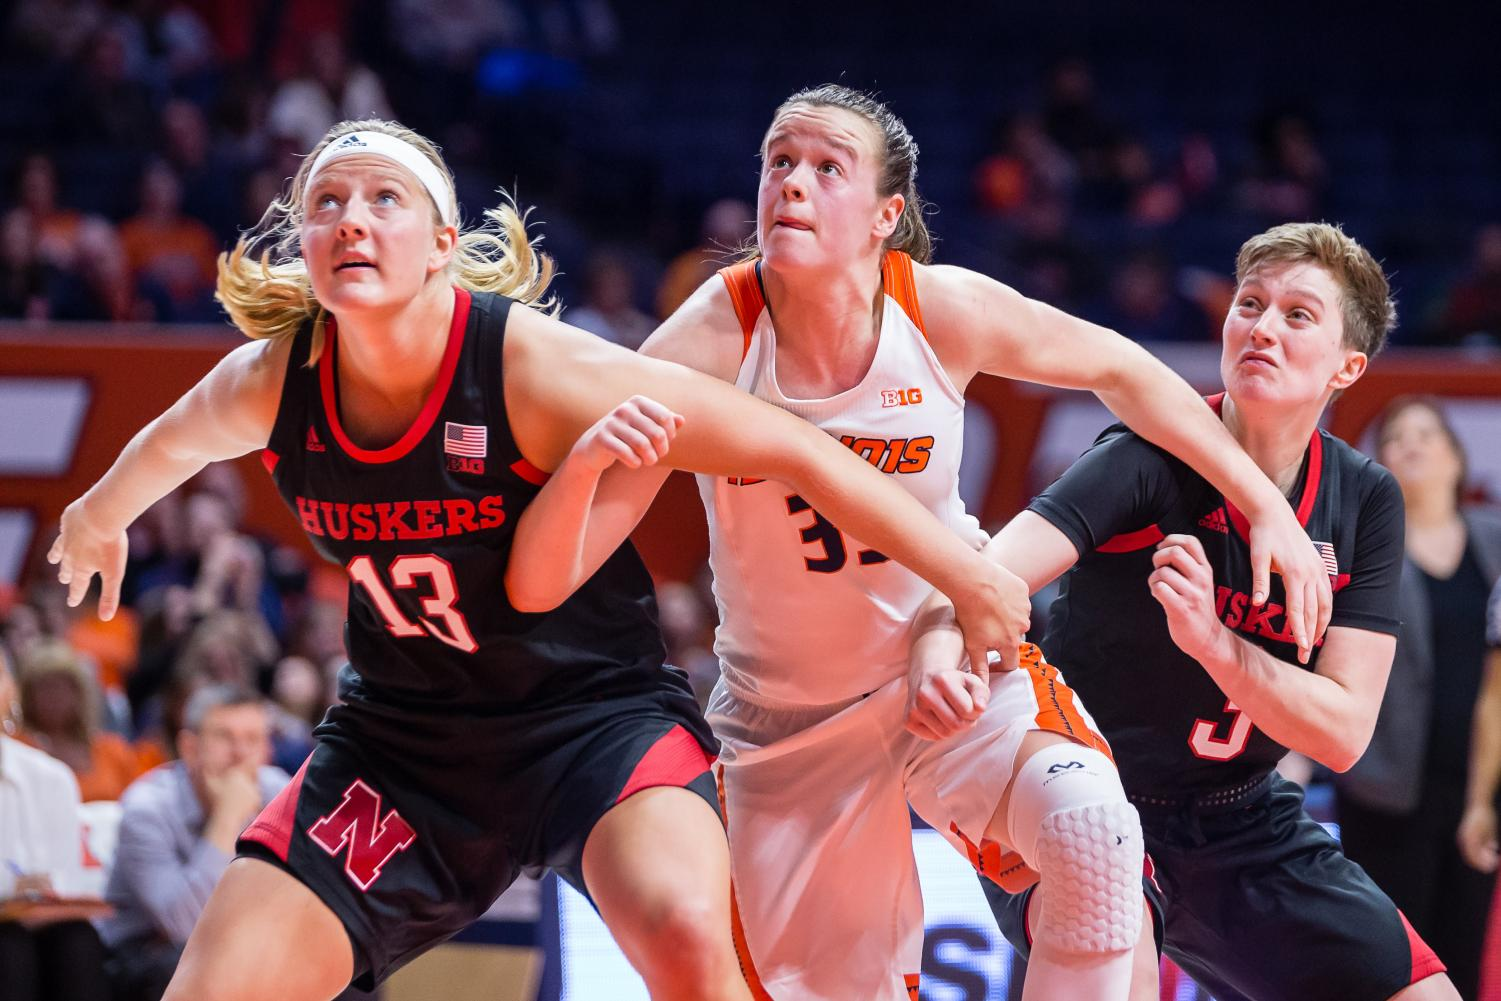 Illinois forward Alex Wittinger fights for position to rebound a free throw during the game against Nebraska at the State Farm Center on Jan. 17. The Illini lost 77-67. Wittinger and junior Brandi Beasley shined in the same against Wisconsin on Feb. 7.